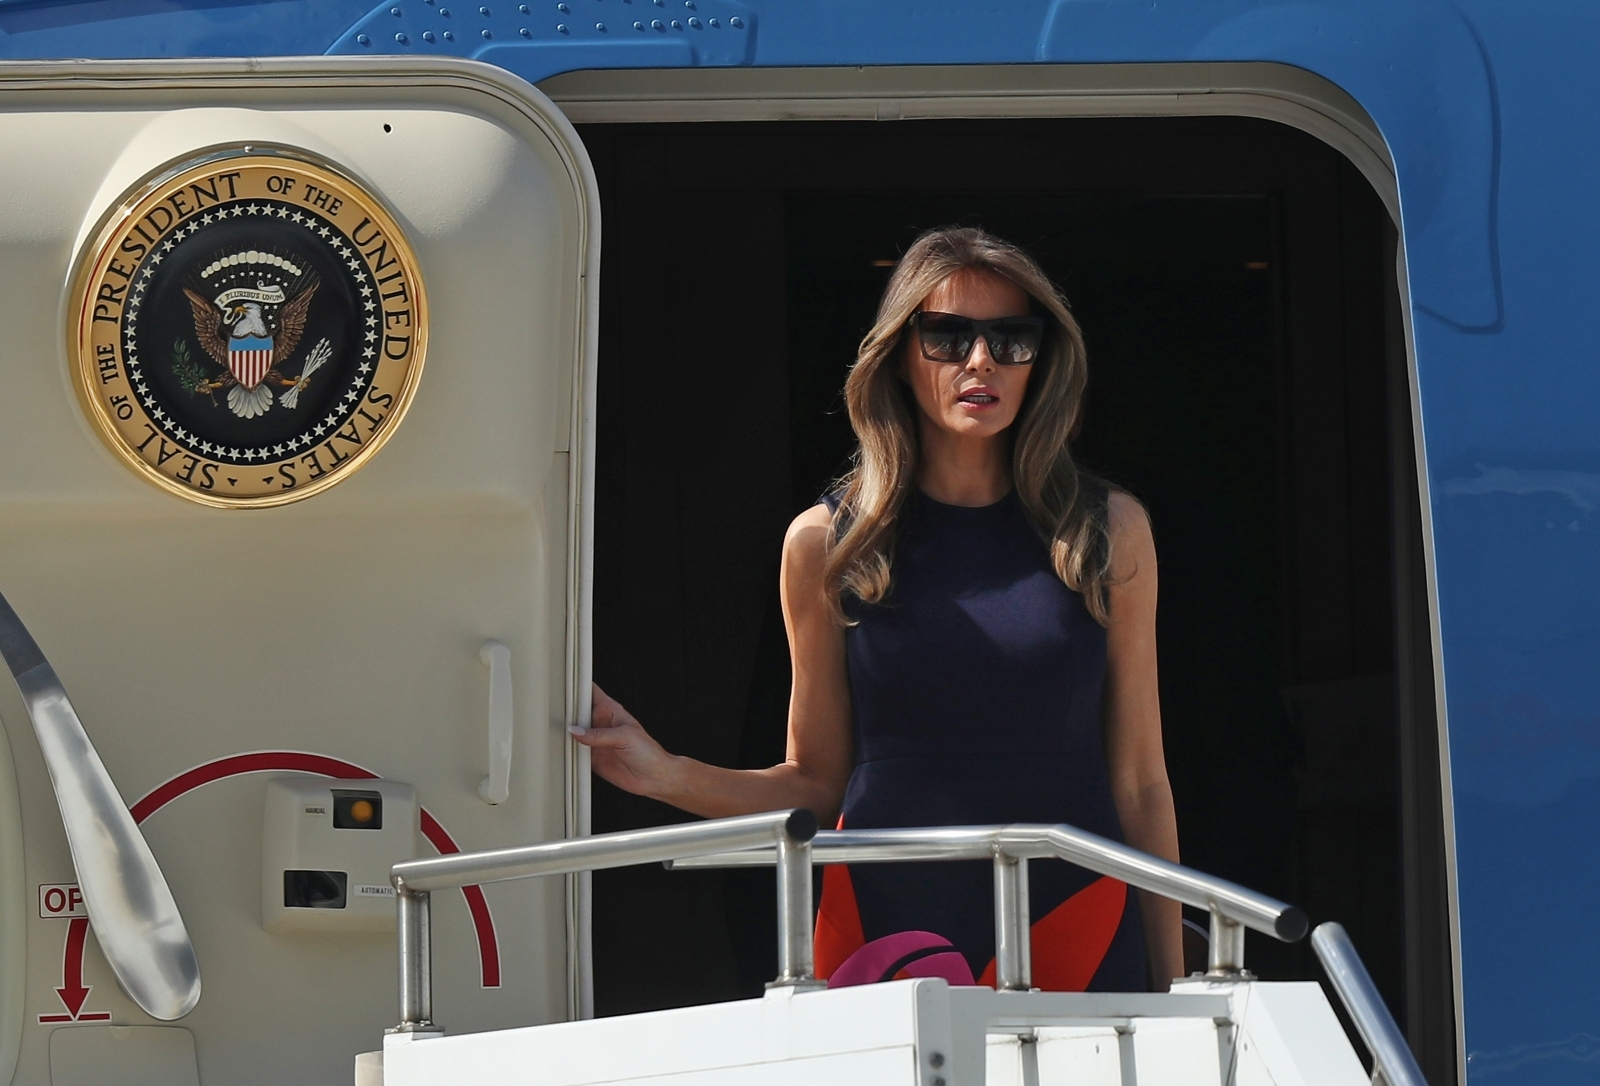 Melania 'furious' and 'blindsided' at Trump over Stormy Daniels affair, via NYT